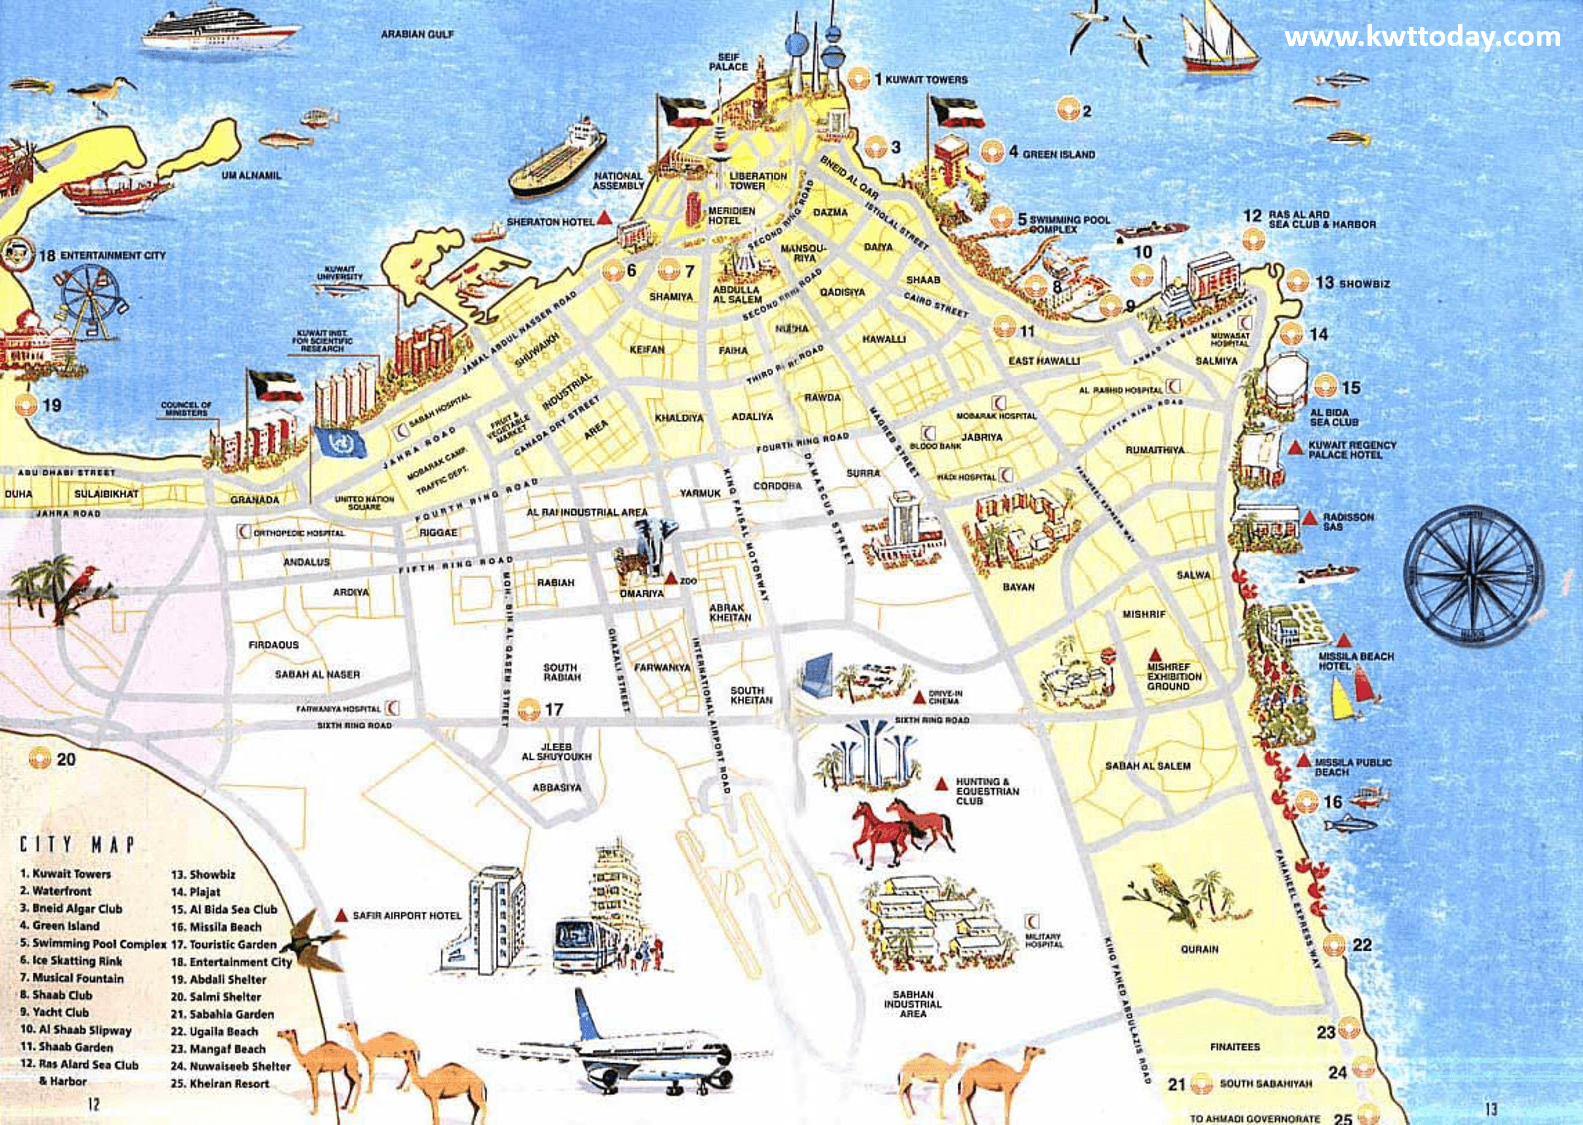 Detailed tourist map of Al Kuwait - Kwt Today